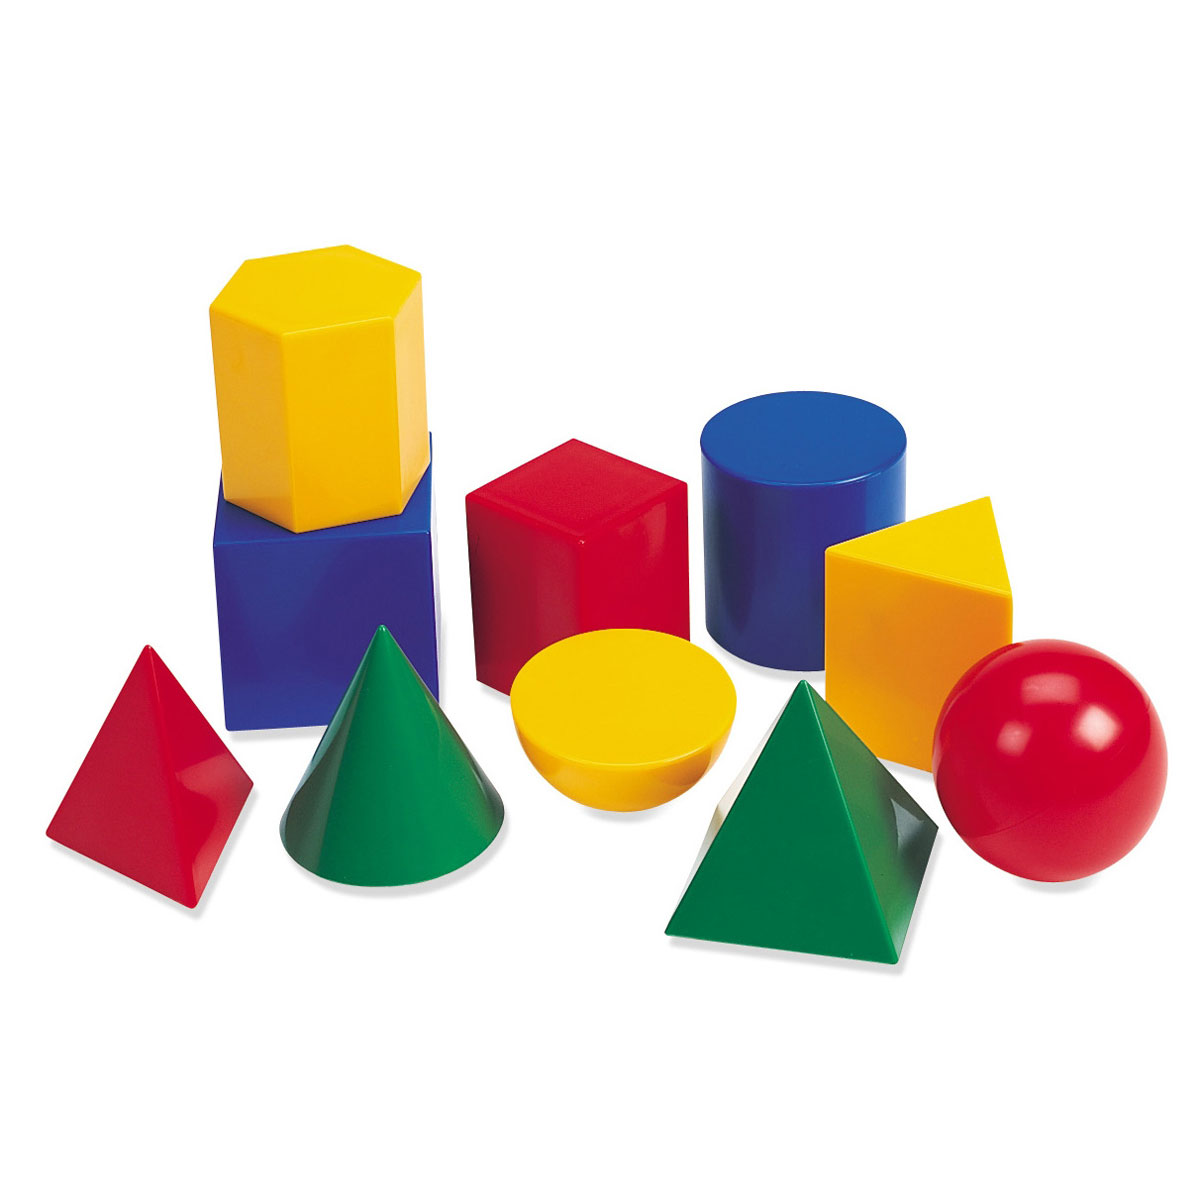 Buy School Large Plastic Geometric Shapes By Learning